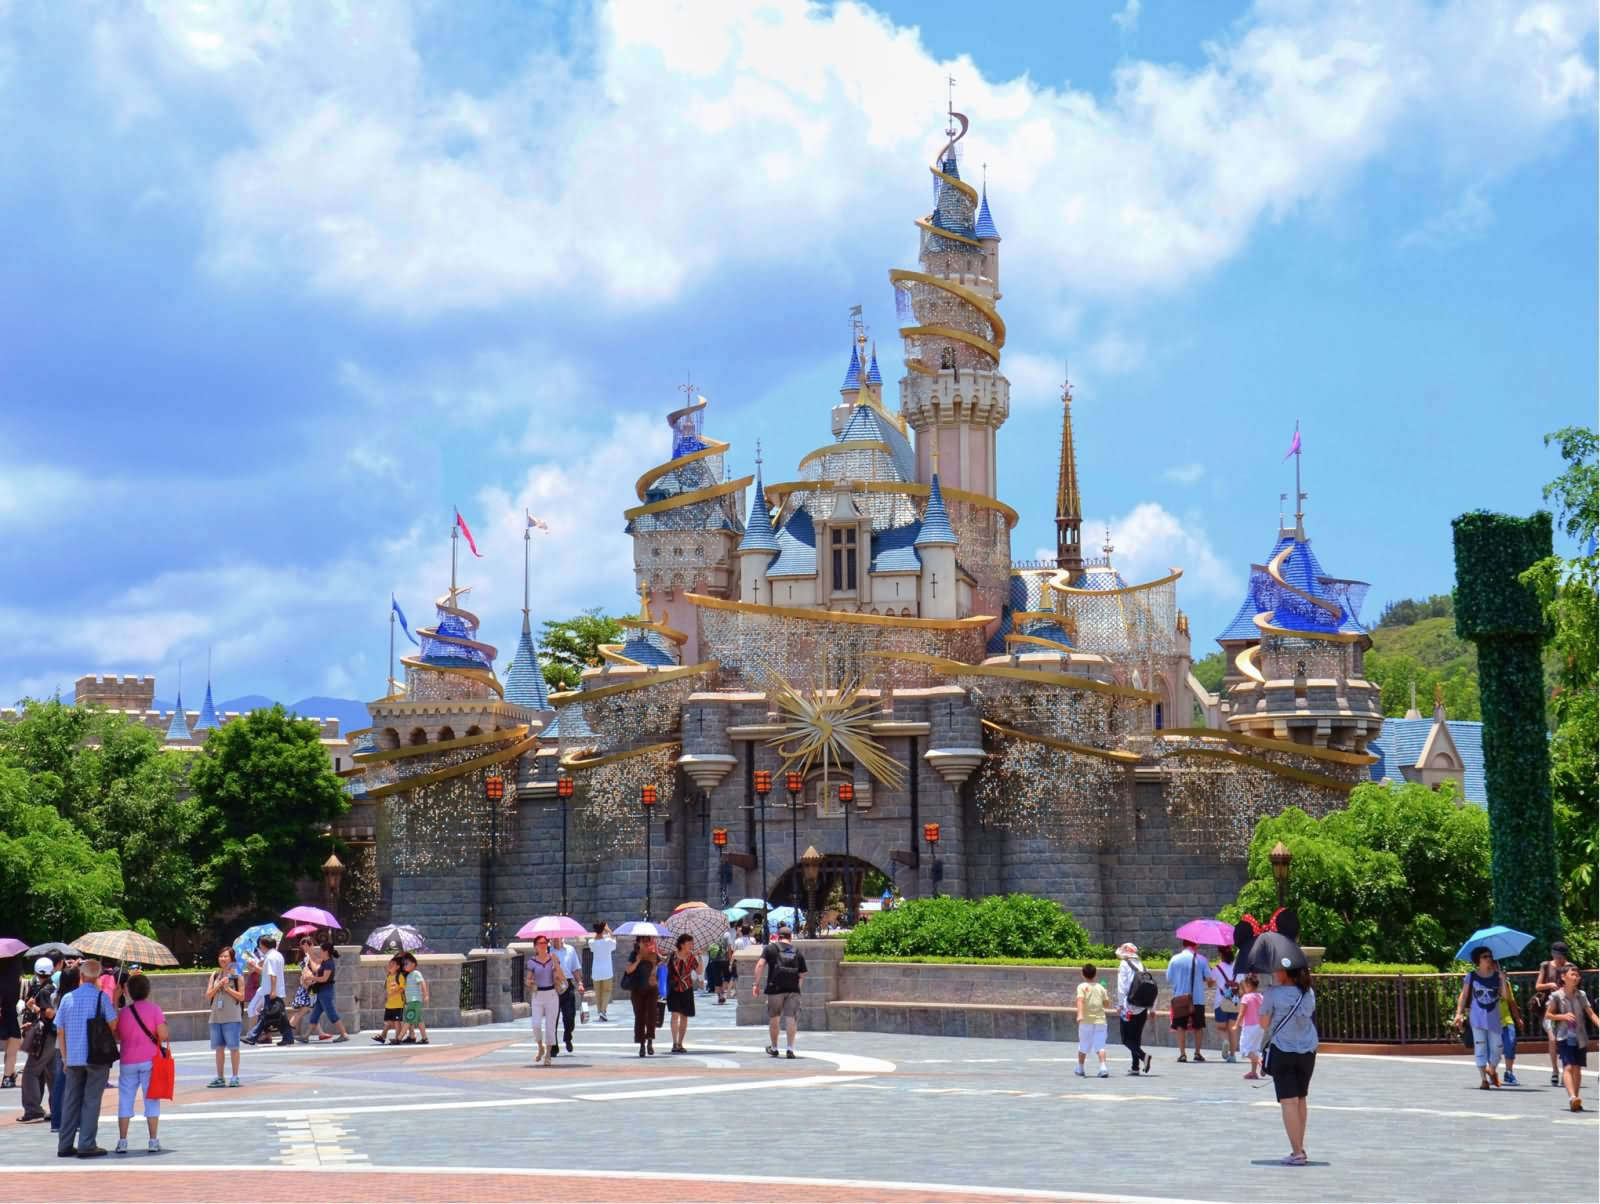 project finance for hong kong disneyland Hong kong disneyland is hiring director, merchandise responsible for overall creative vision strategize and create financial plans bachelor's degree in business.